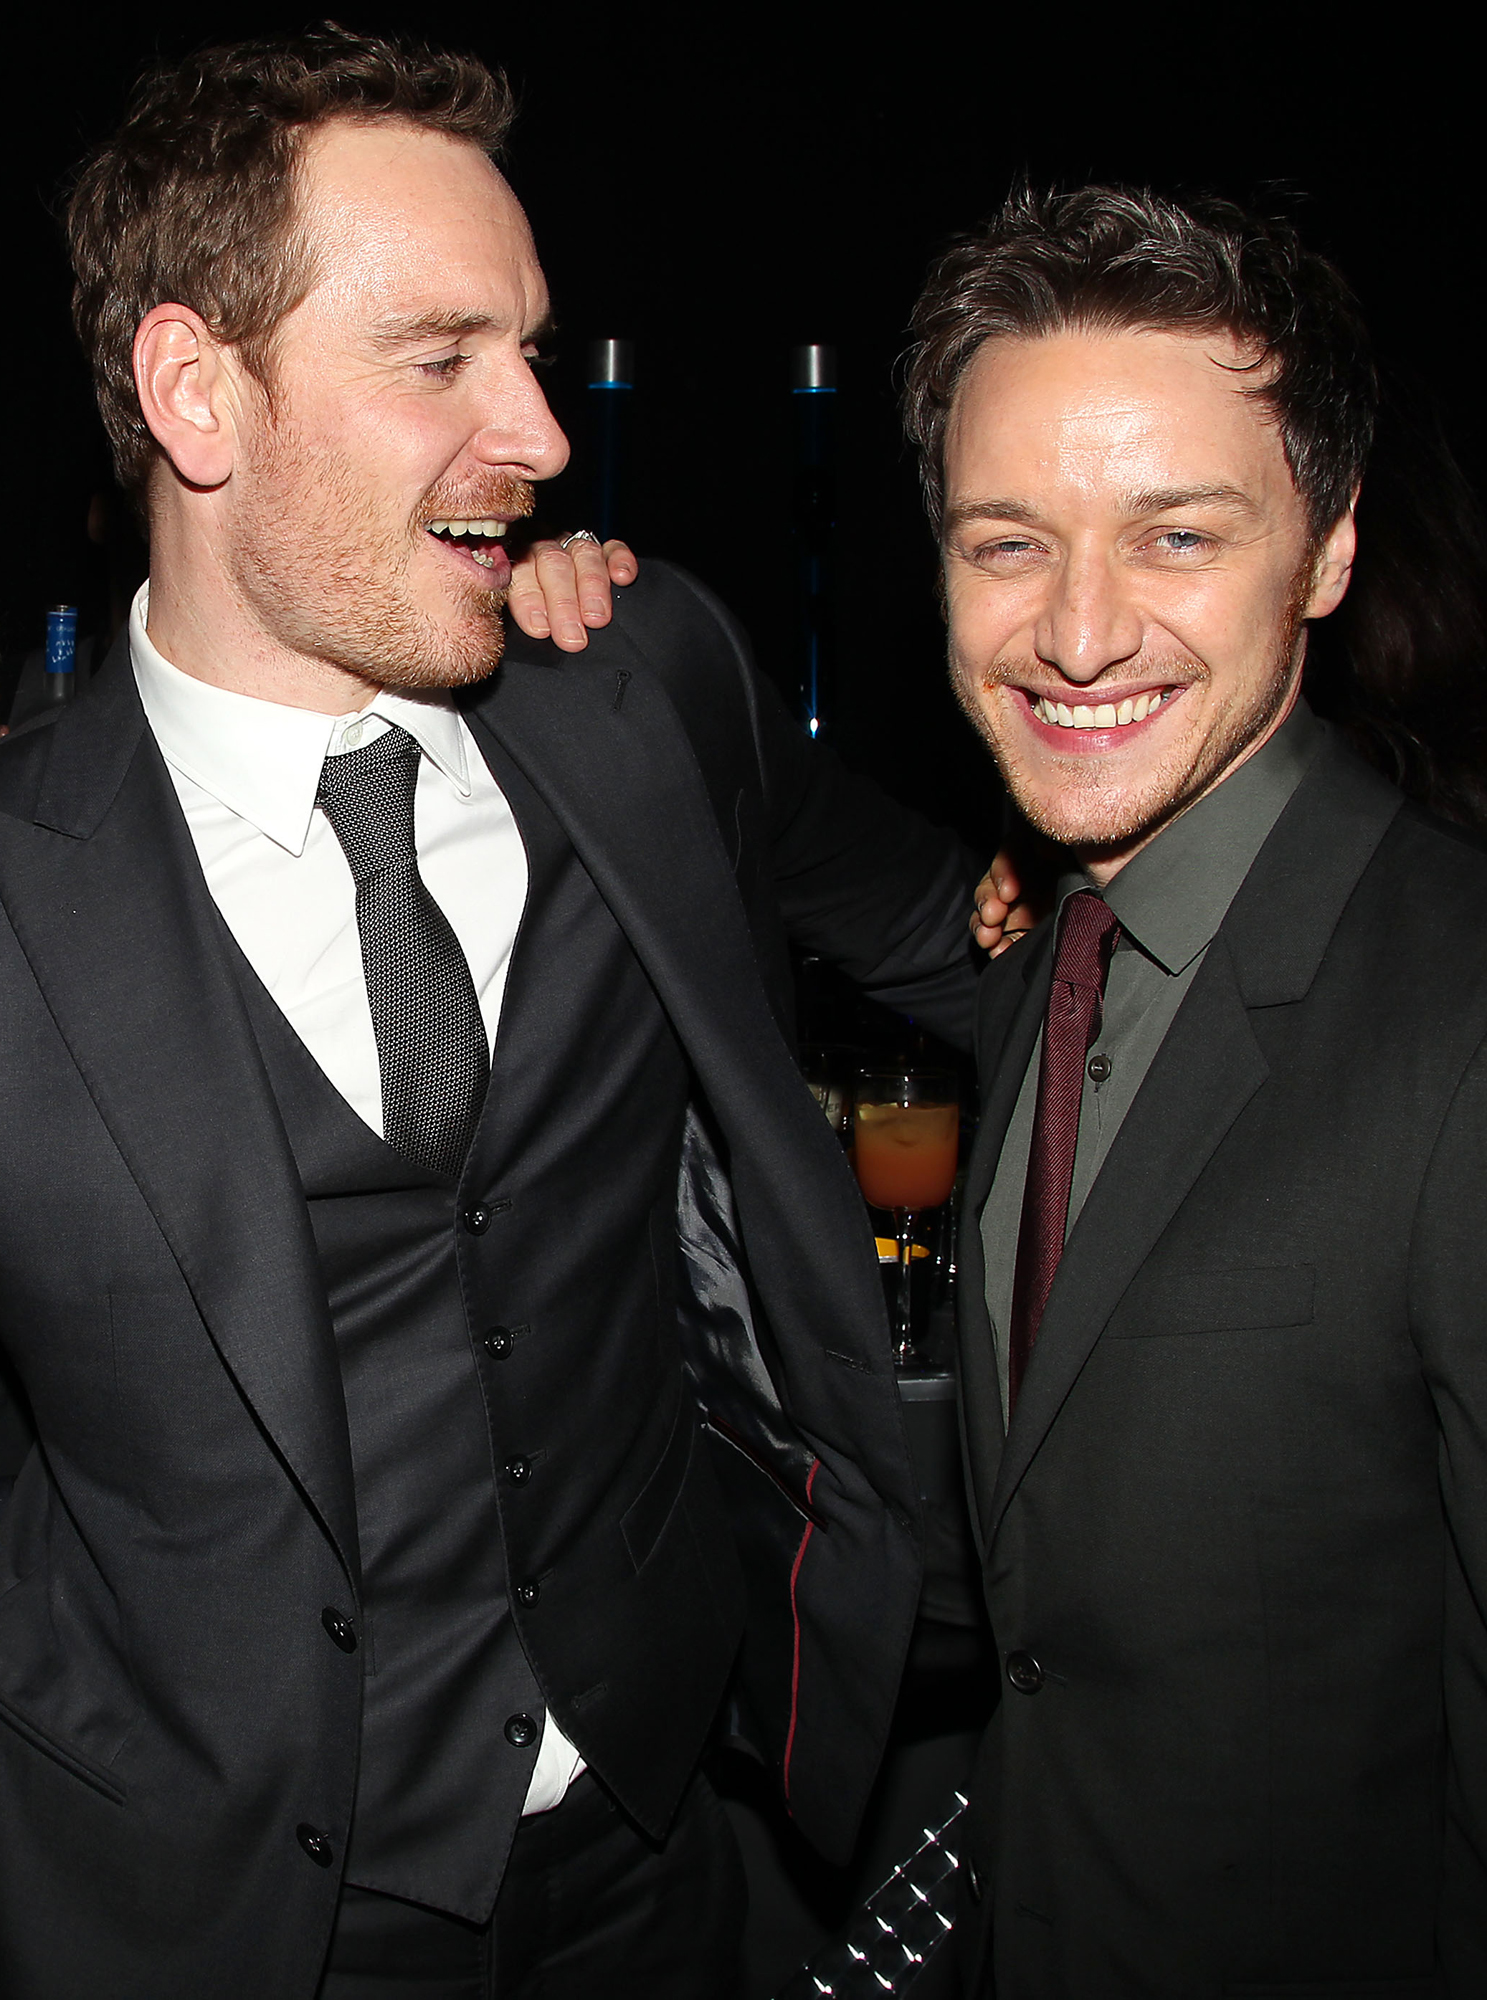 'X-Men: Days of Future Past' film premiere after party, New York, America - 10 May 2014